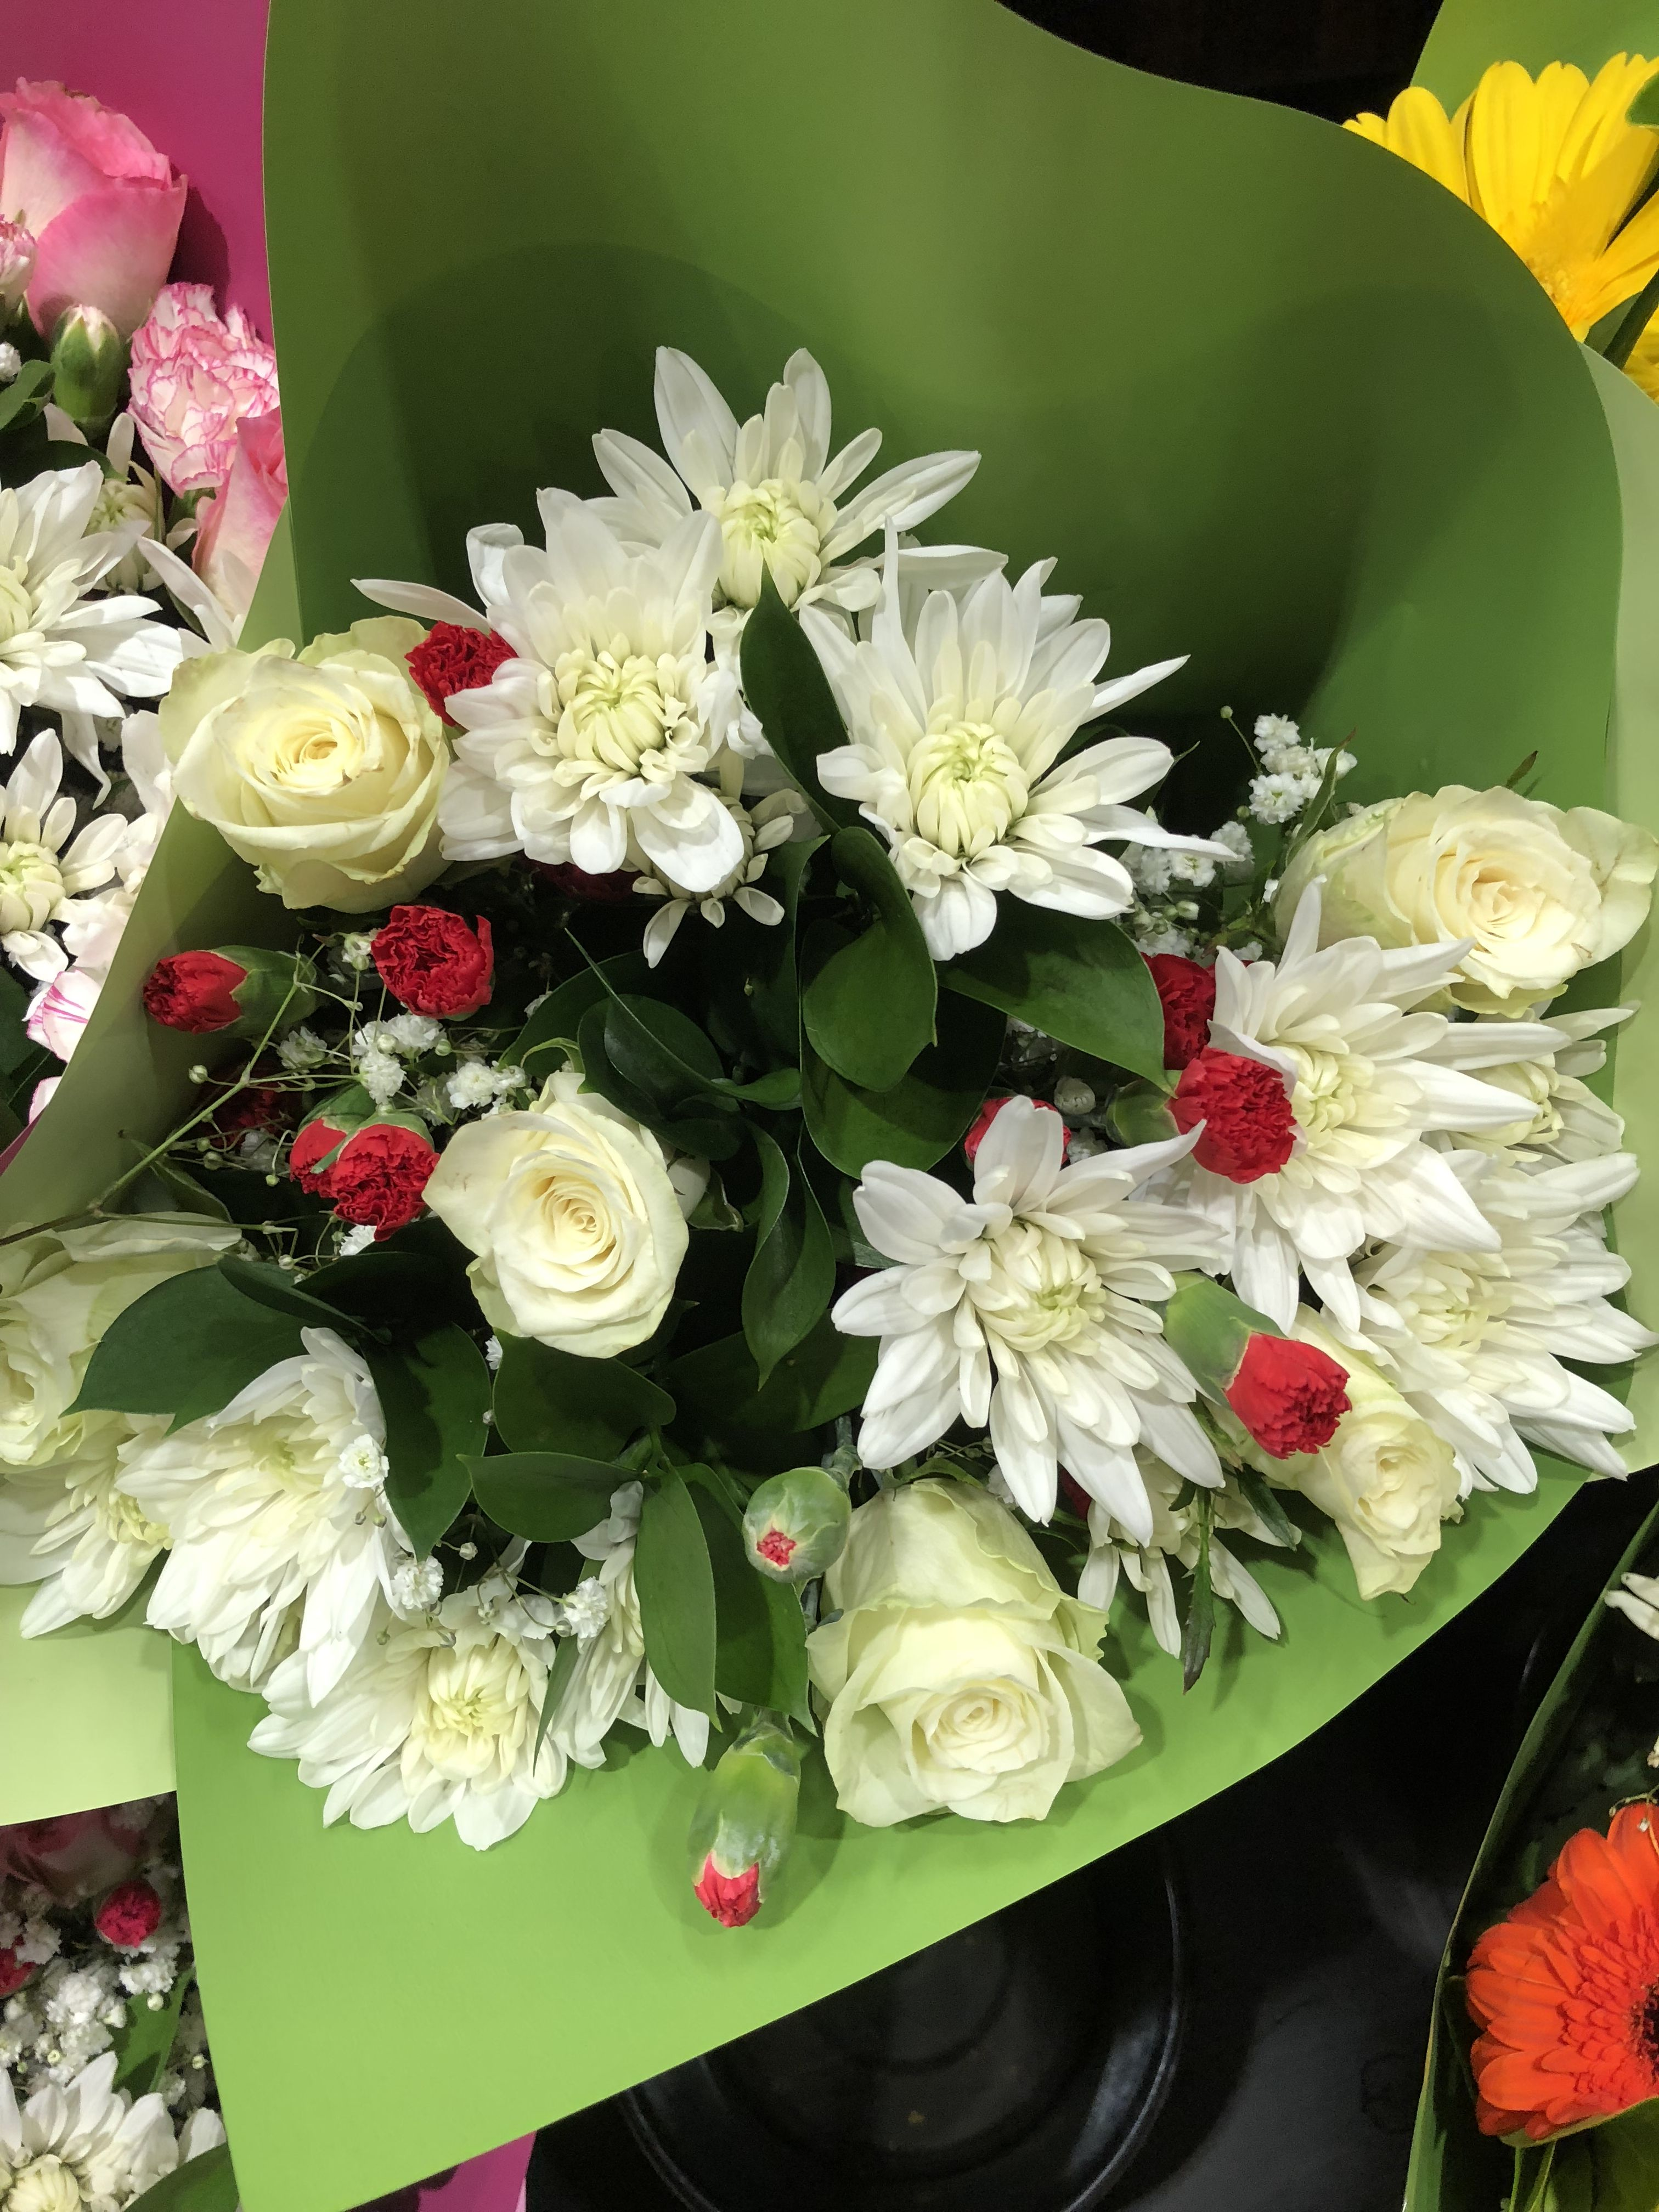 I usually buy flowers from woolworths as the quality is great they i usually buy flowers from woolworths as the quality is great they had some great izmirmasajfo